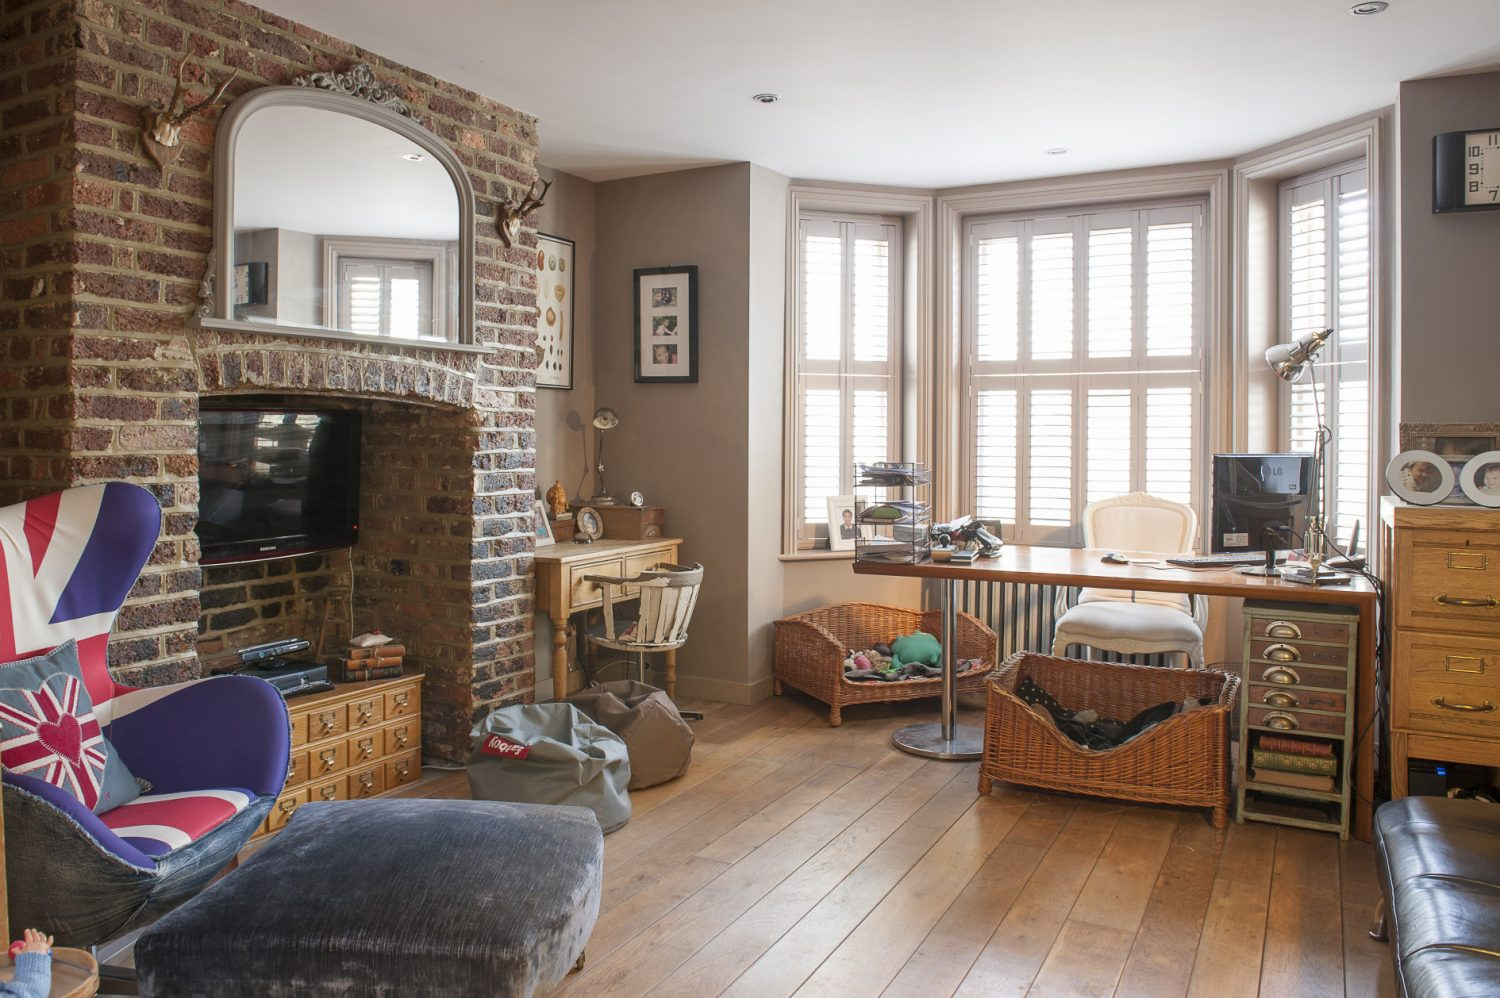 The walls are the original glowing brick and white lime mortar and the floor throughout oak boarding